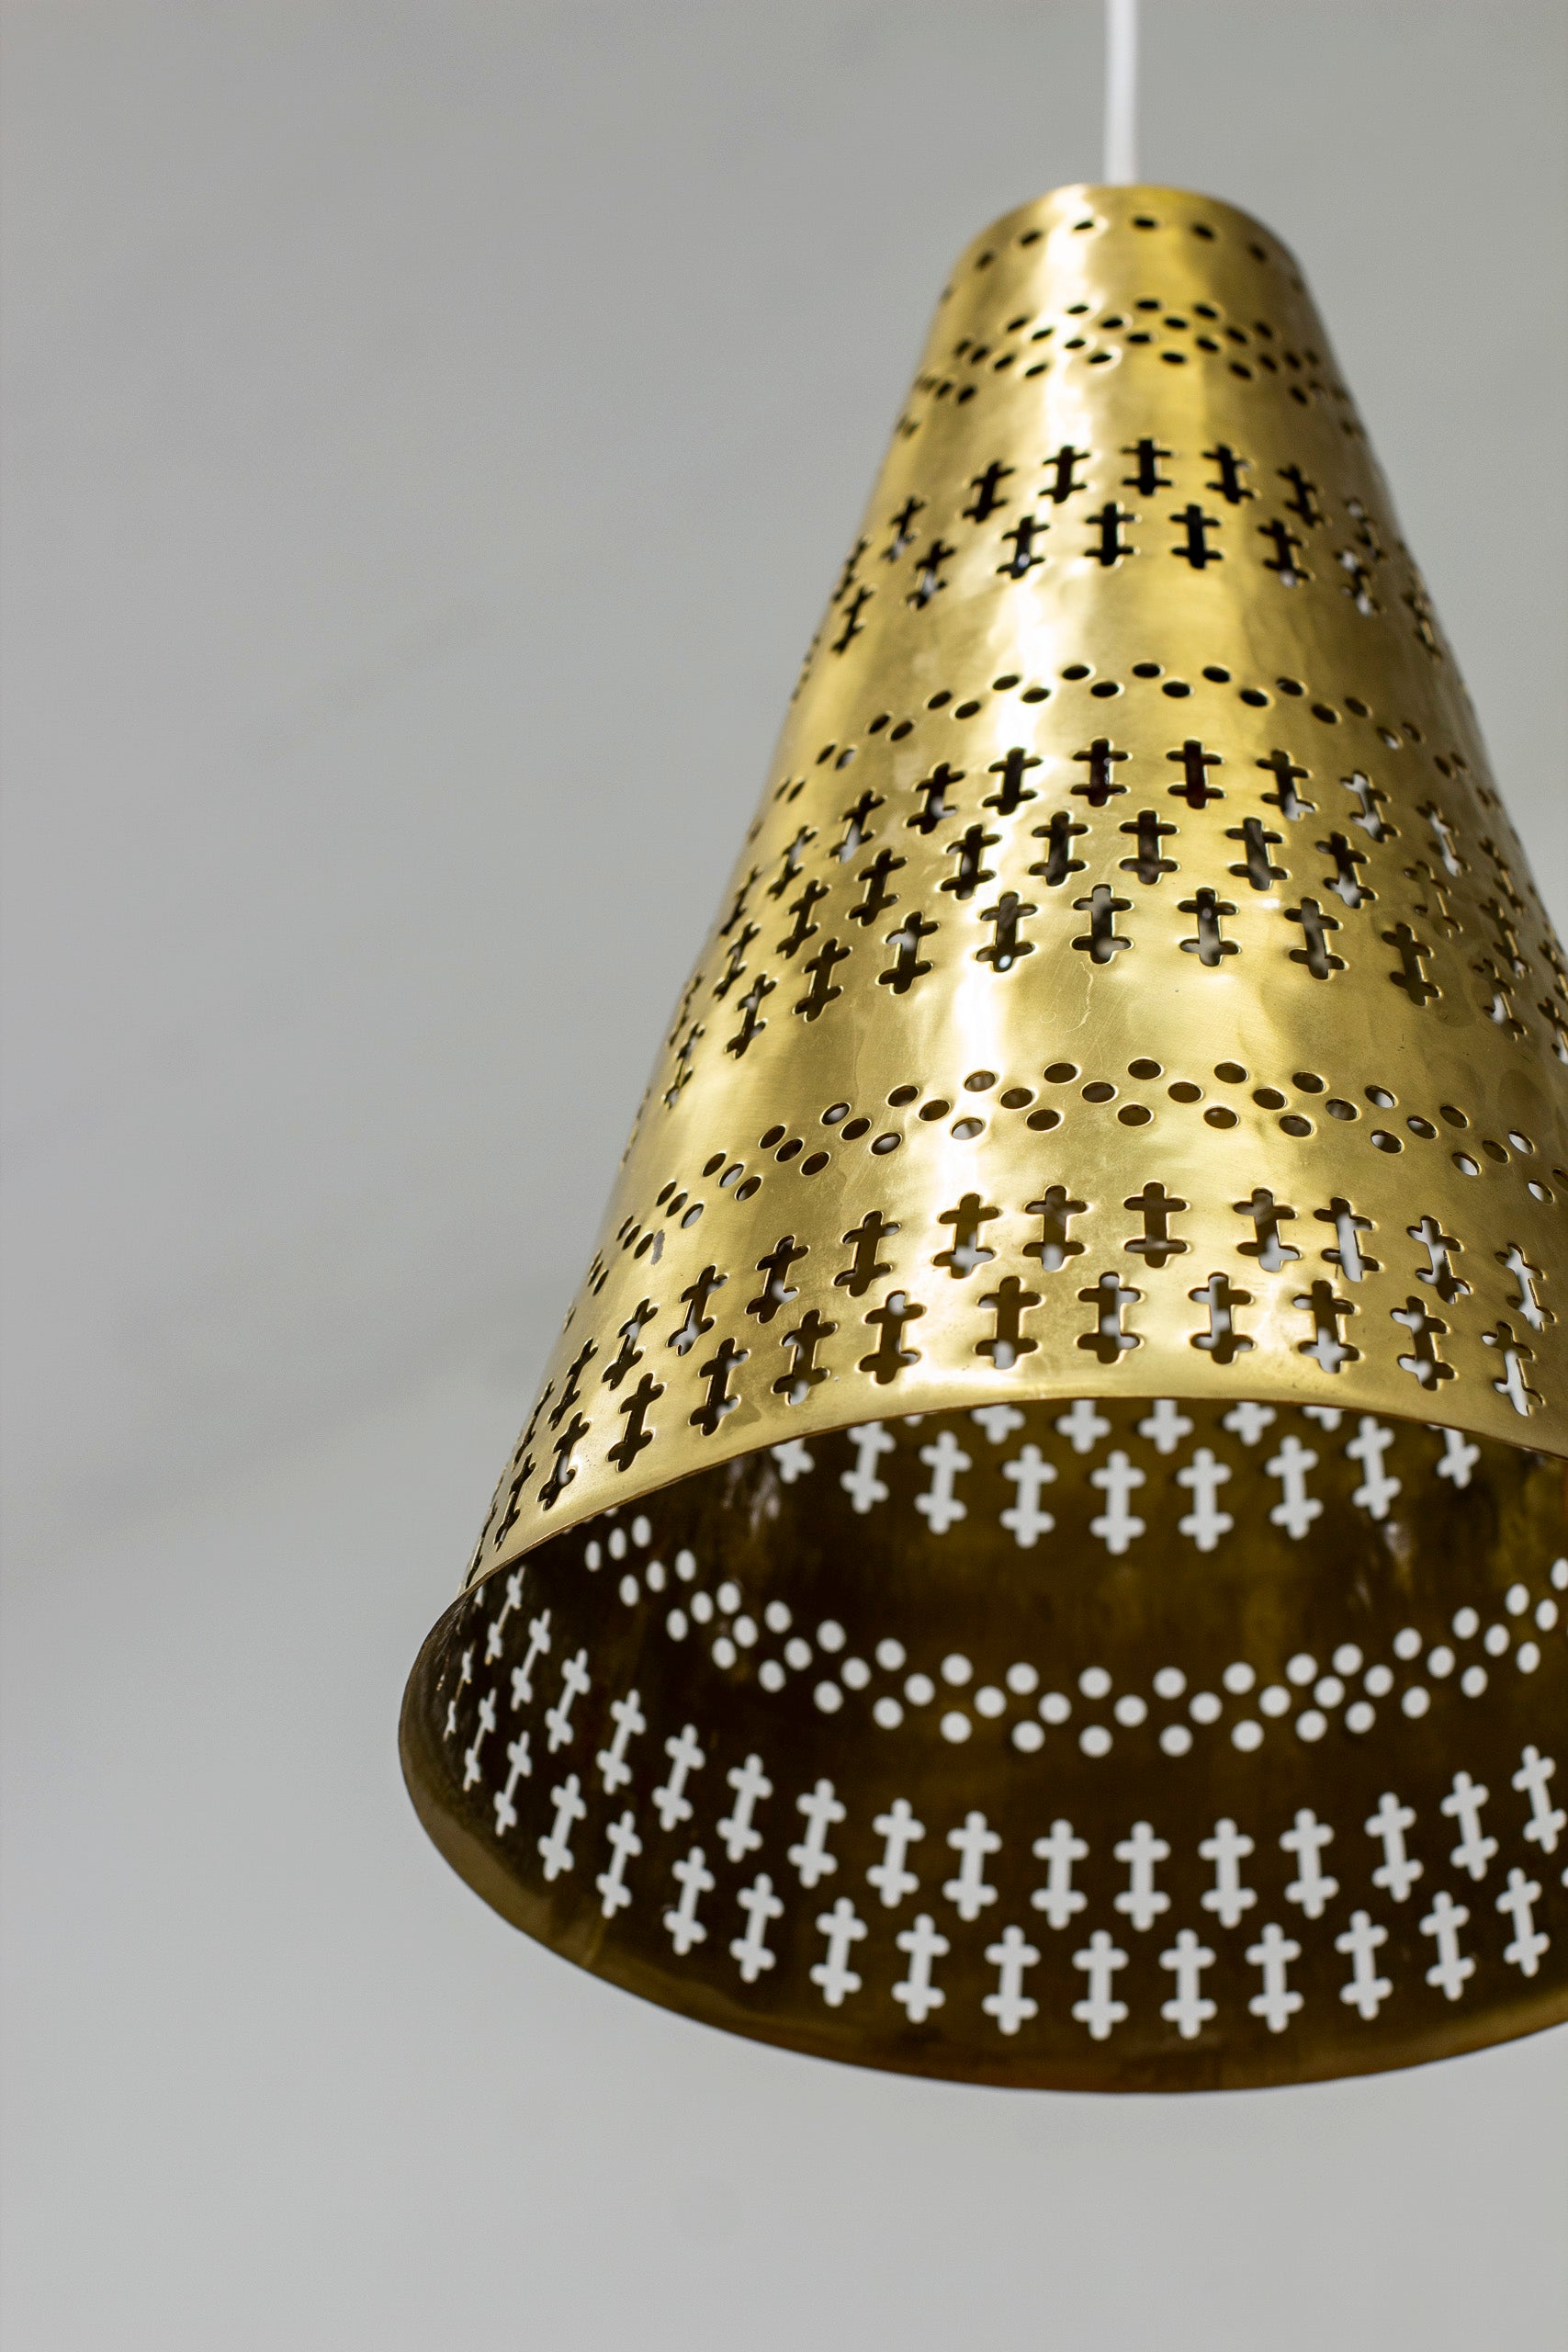 Ceiling lamp model 70/1 by Hans Bergström